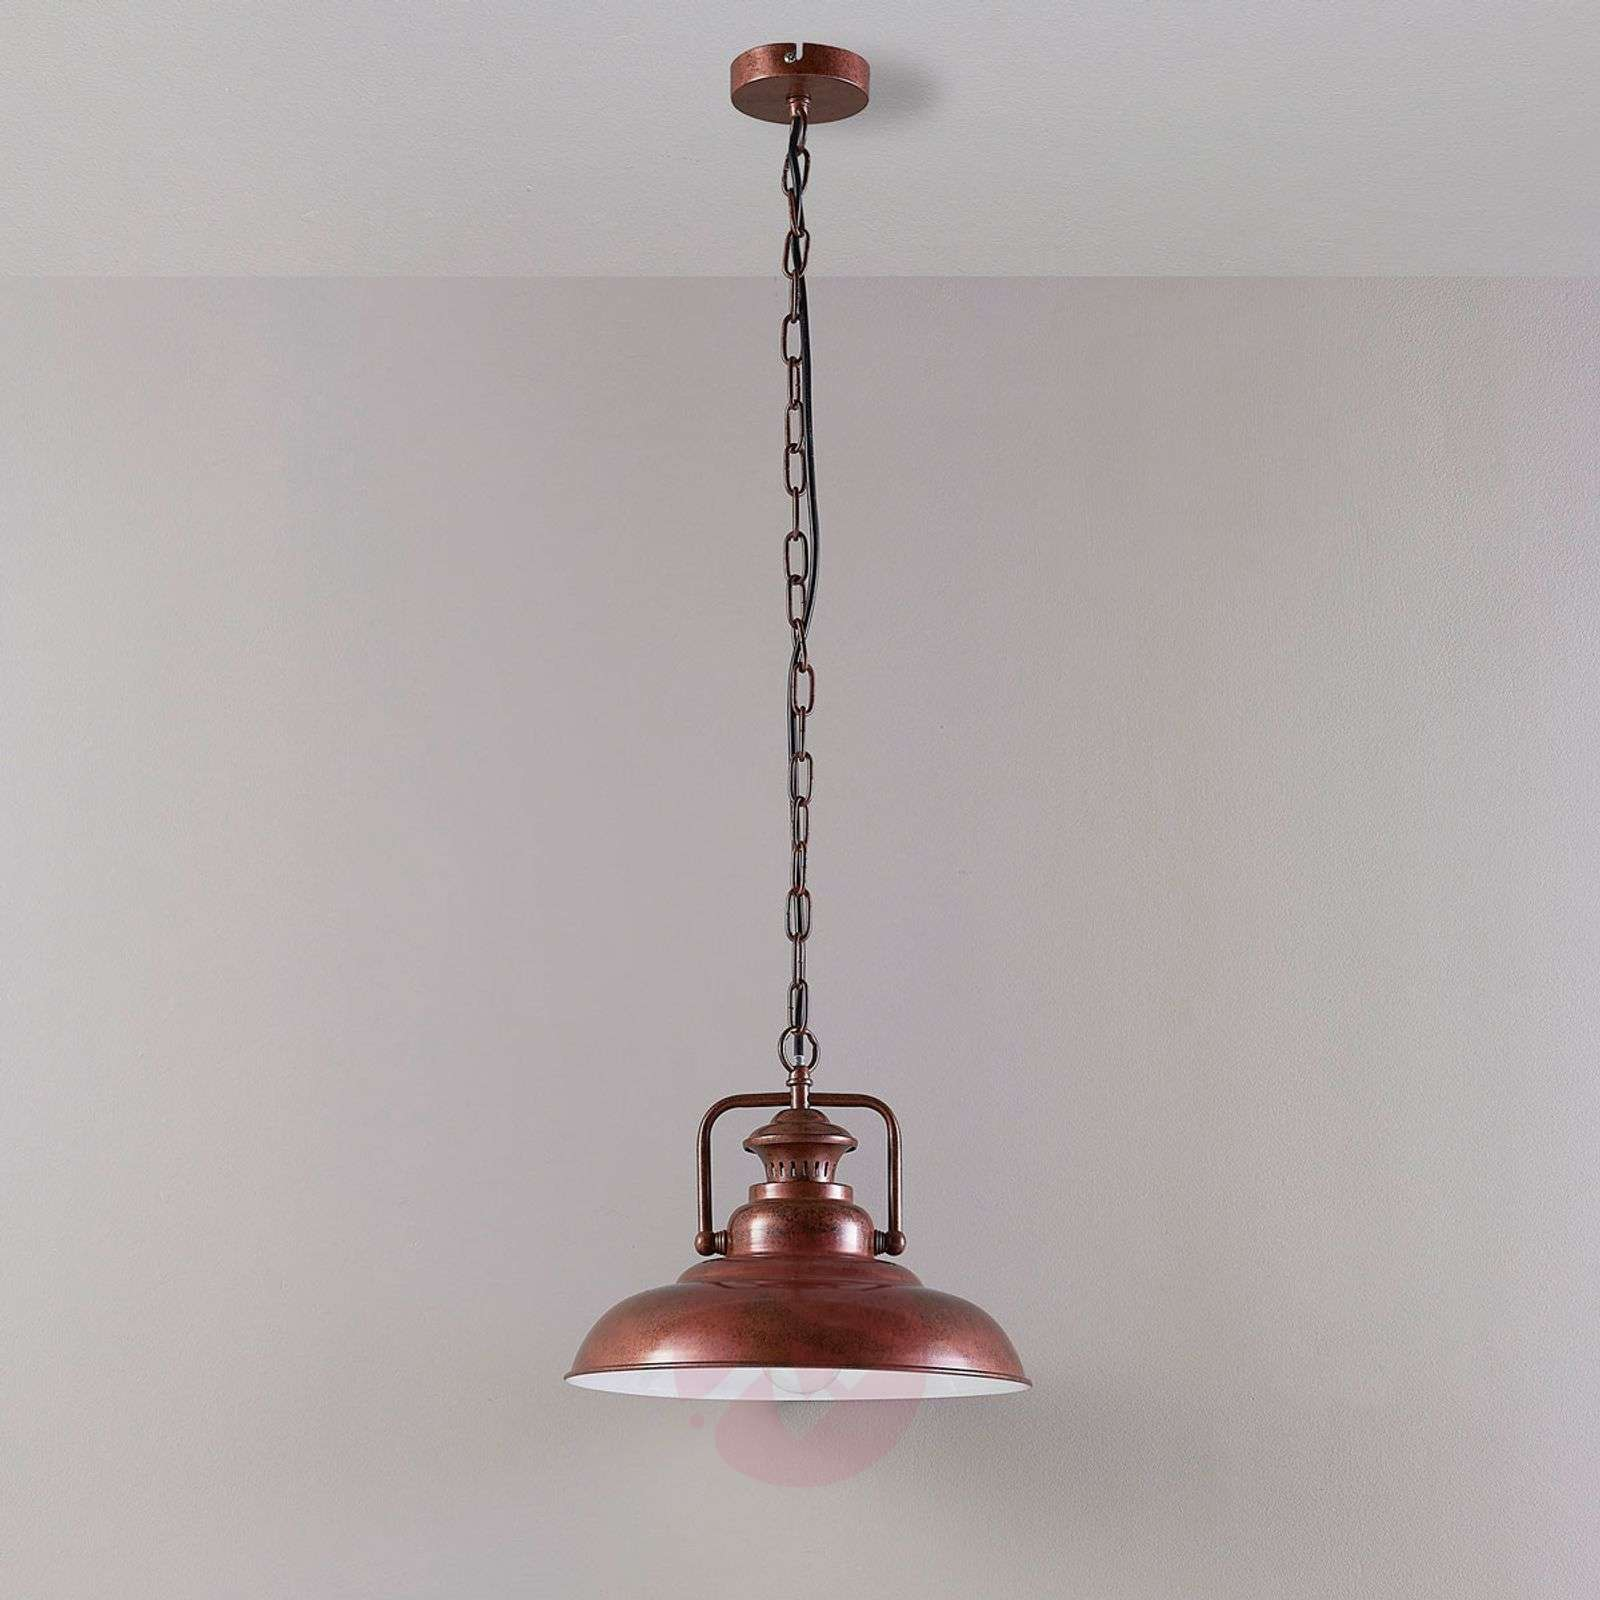 Pendant light Nico in an industrial style-9620887-010